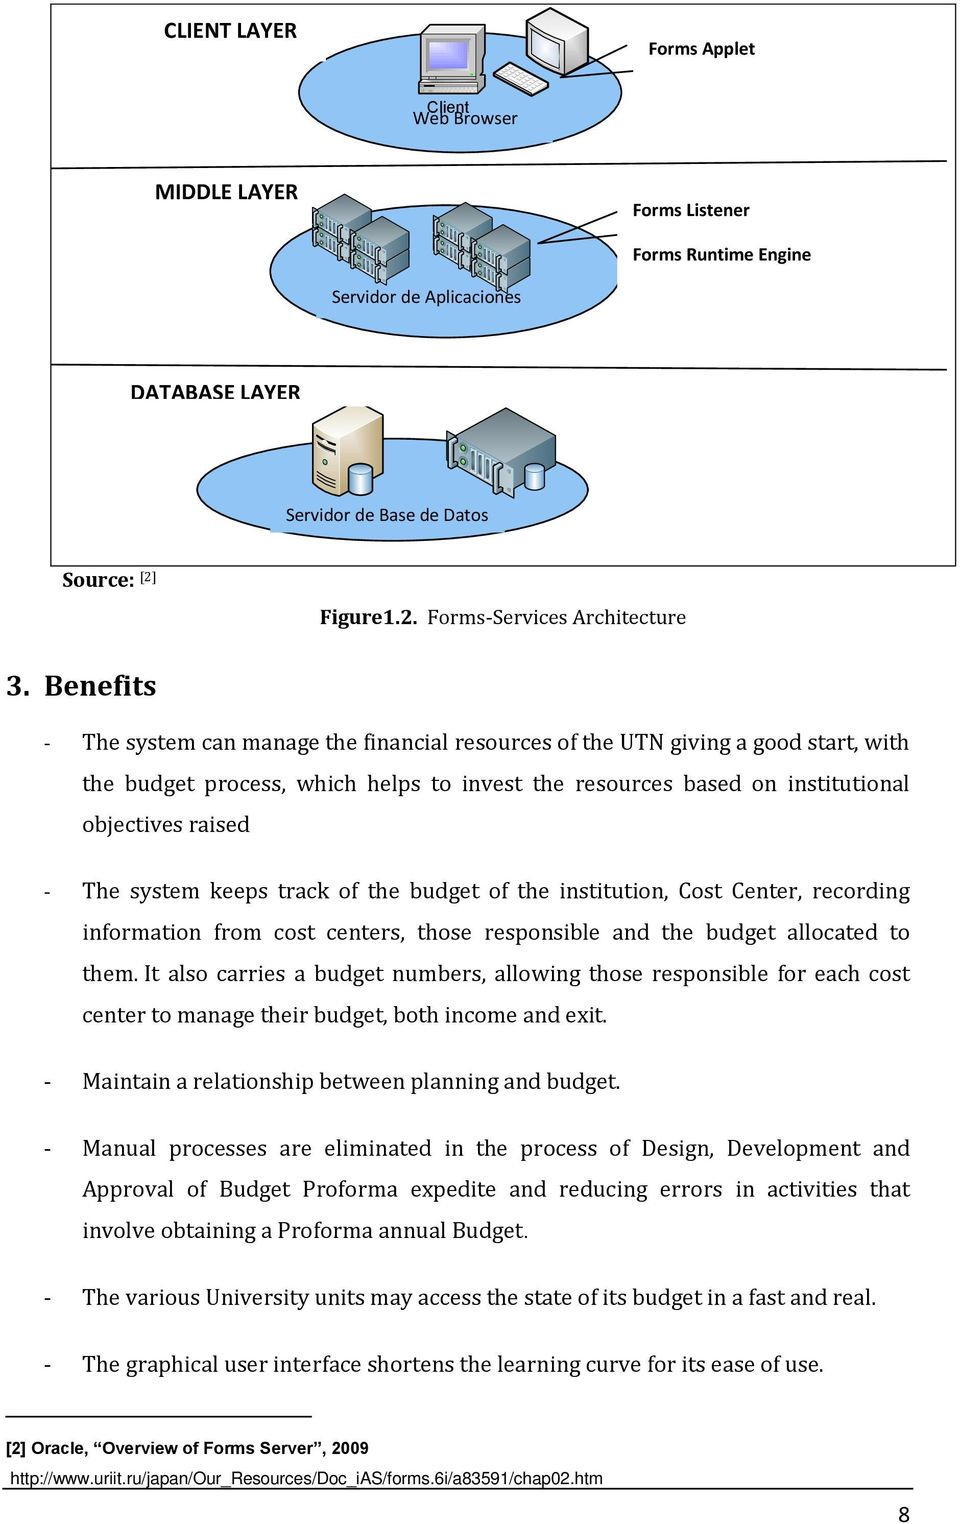 Benefits - The system can manage the financial resources of the UTN giving a good start, with the budget process, which helps to invest the resources based on institutional objectives raised - The